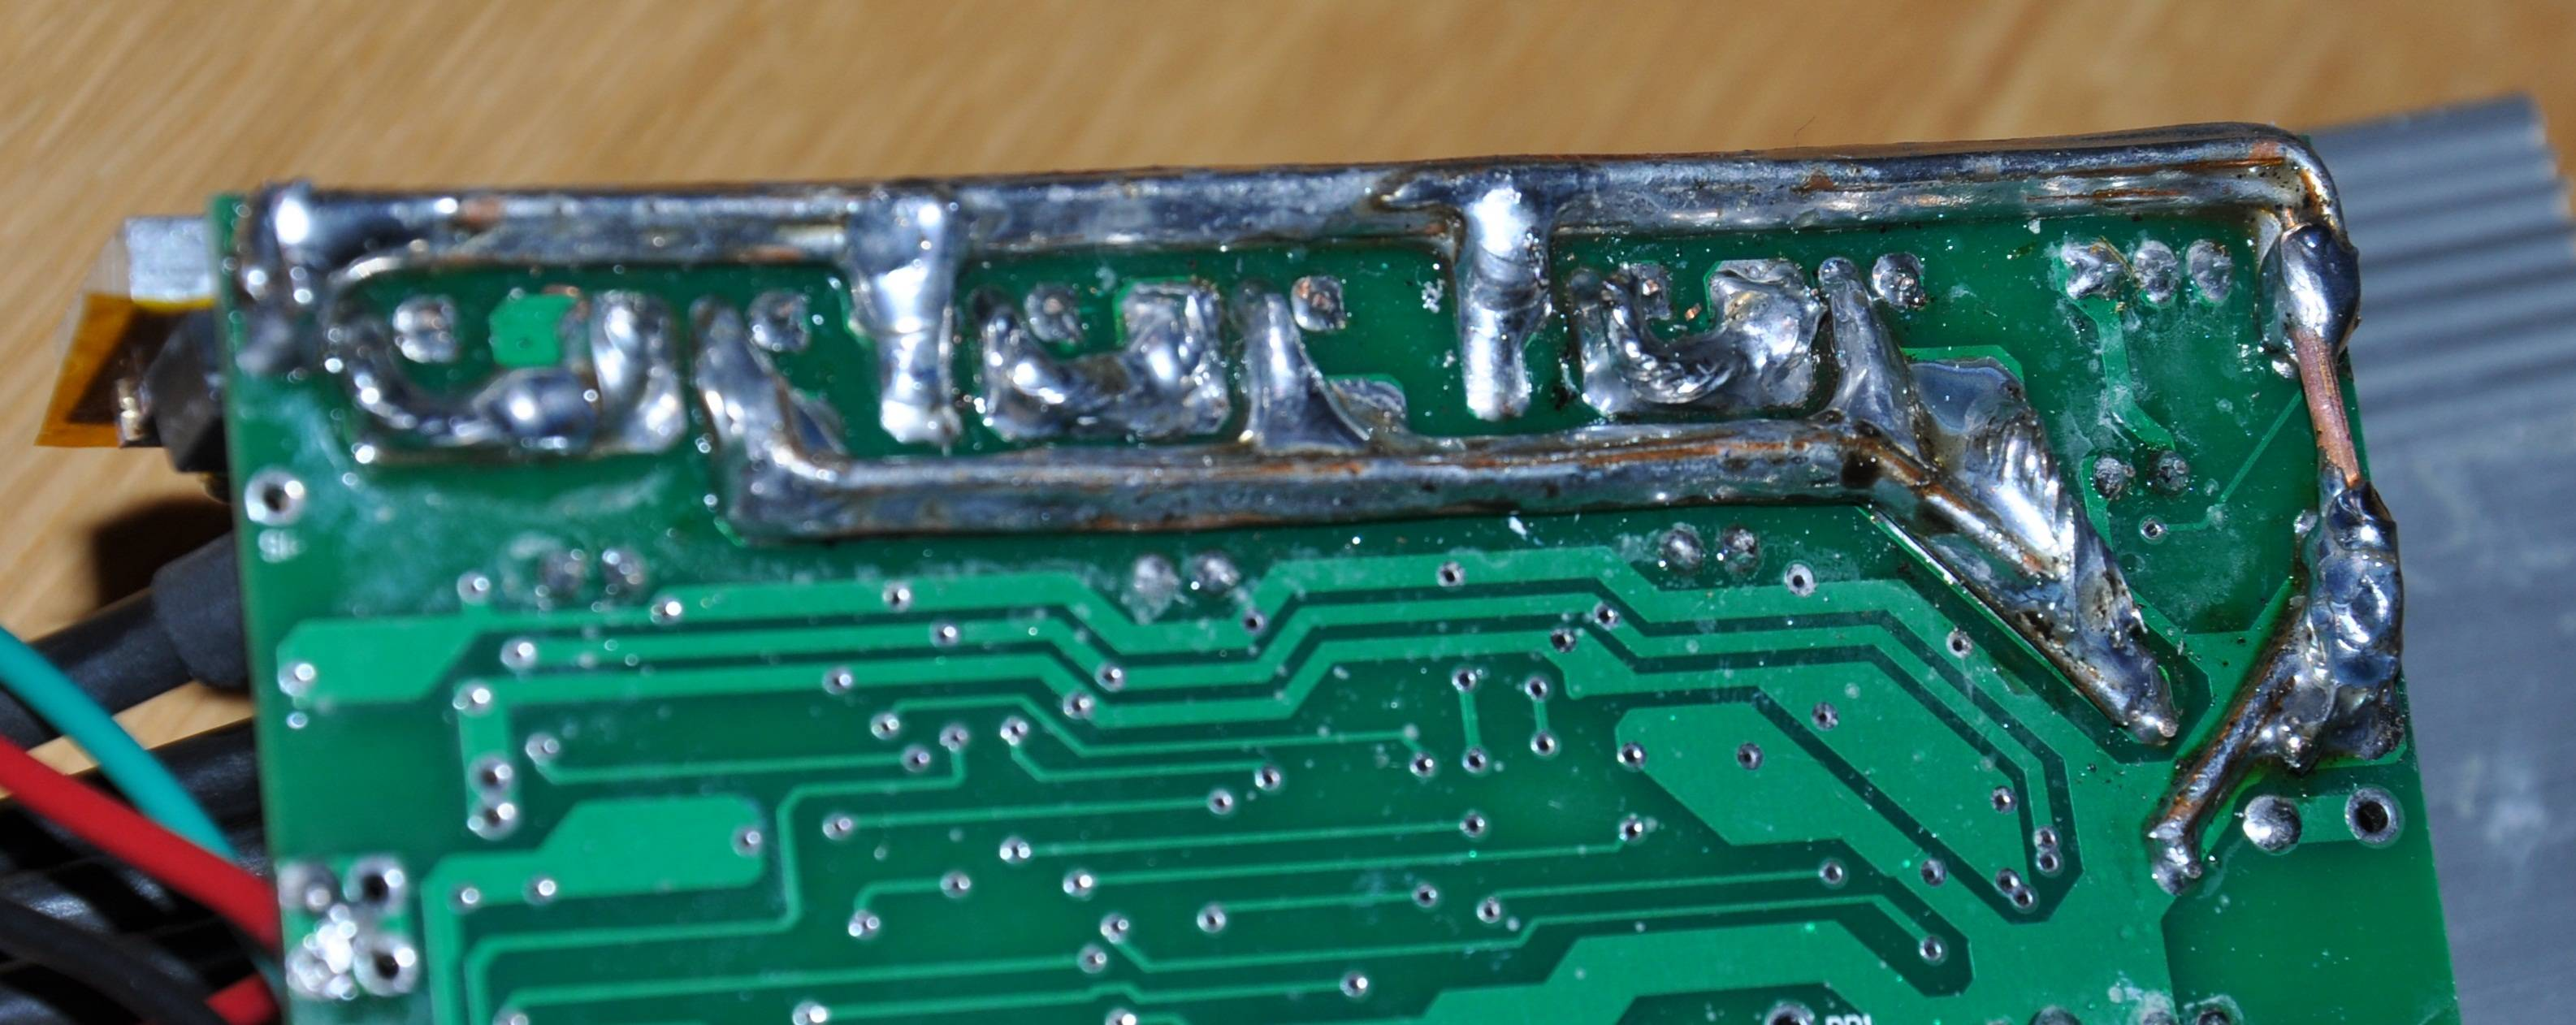 Stupendous Is Soldering Extra Wires To Increase Current Capacity On A Pcb Trace Wiring Cloud Ittabisraaidewilluminateatxorg